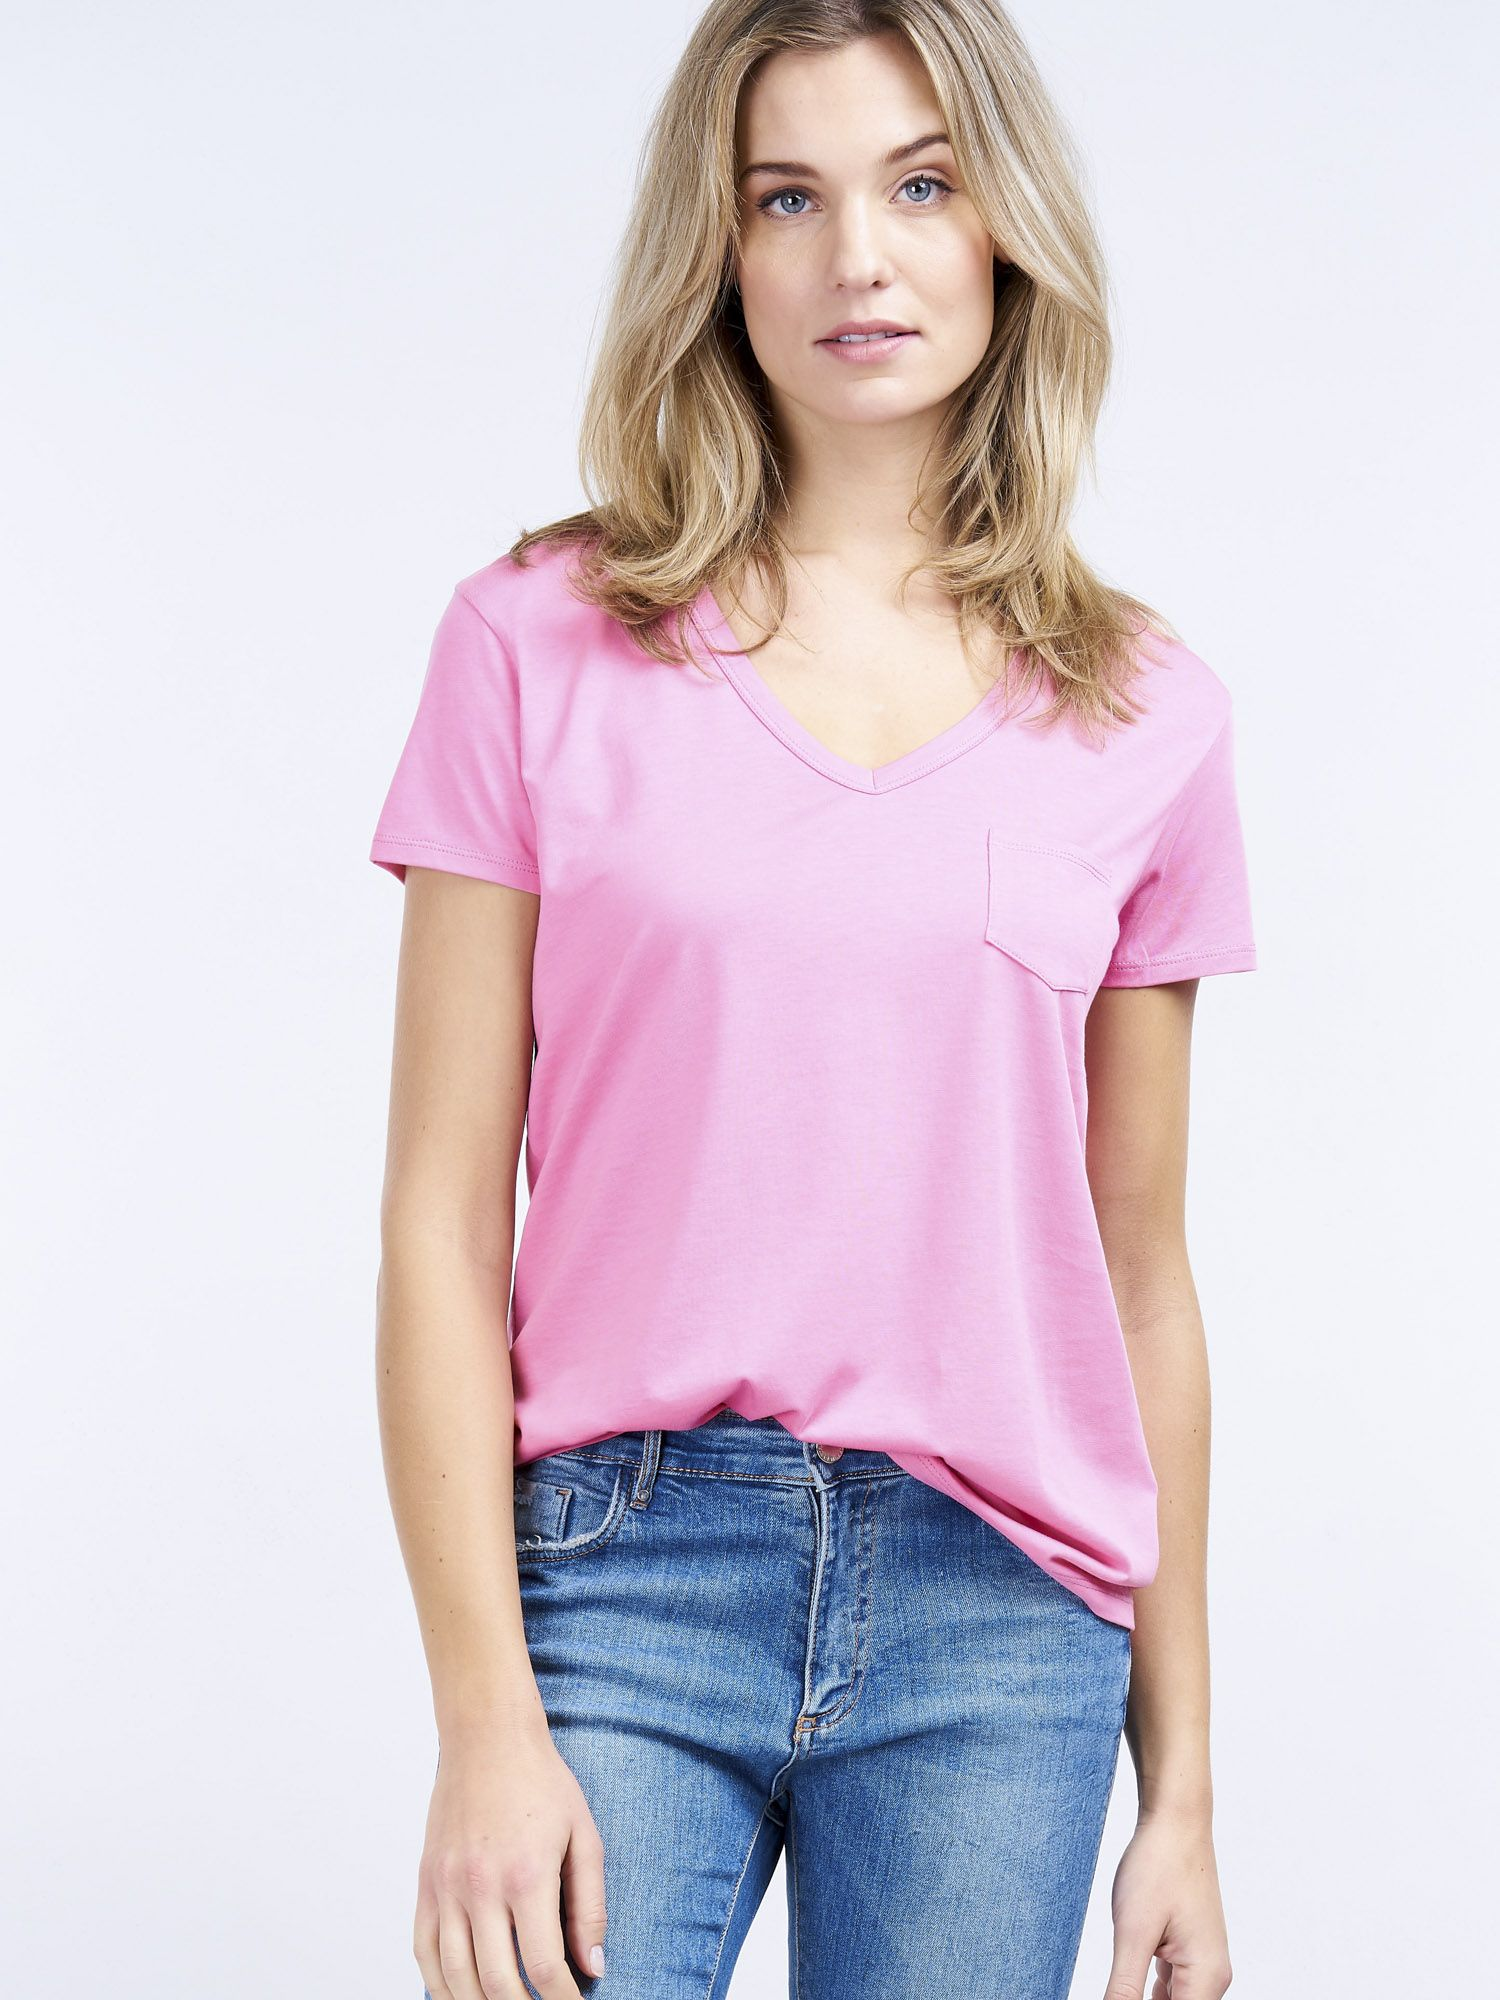 REPEAT Women Women's basic V neck T shirt with chest